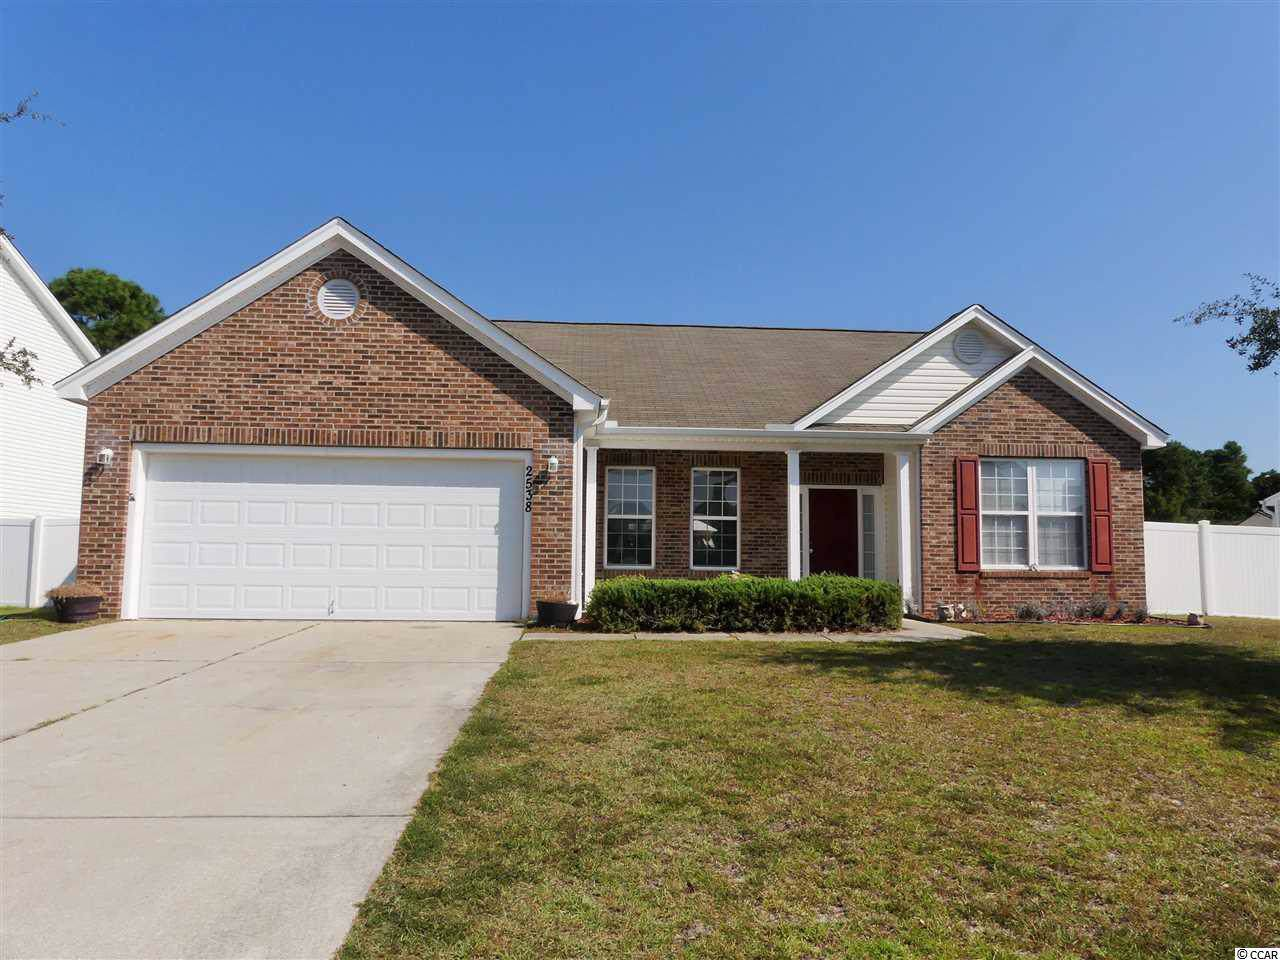 2538 Sugar Creek Ct. - Photo 1